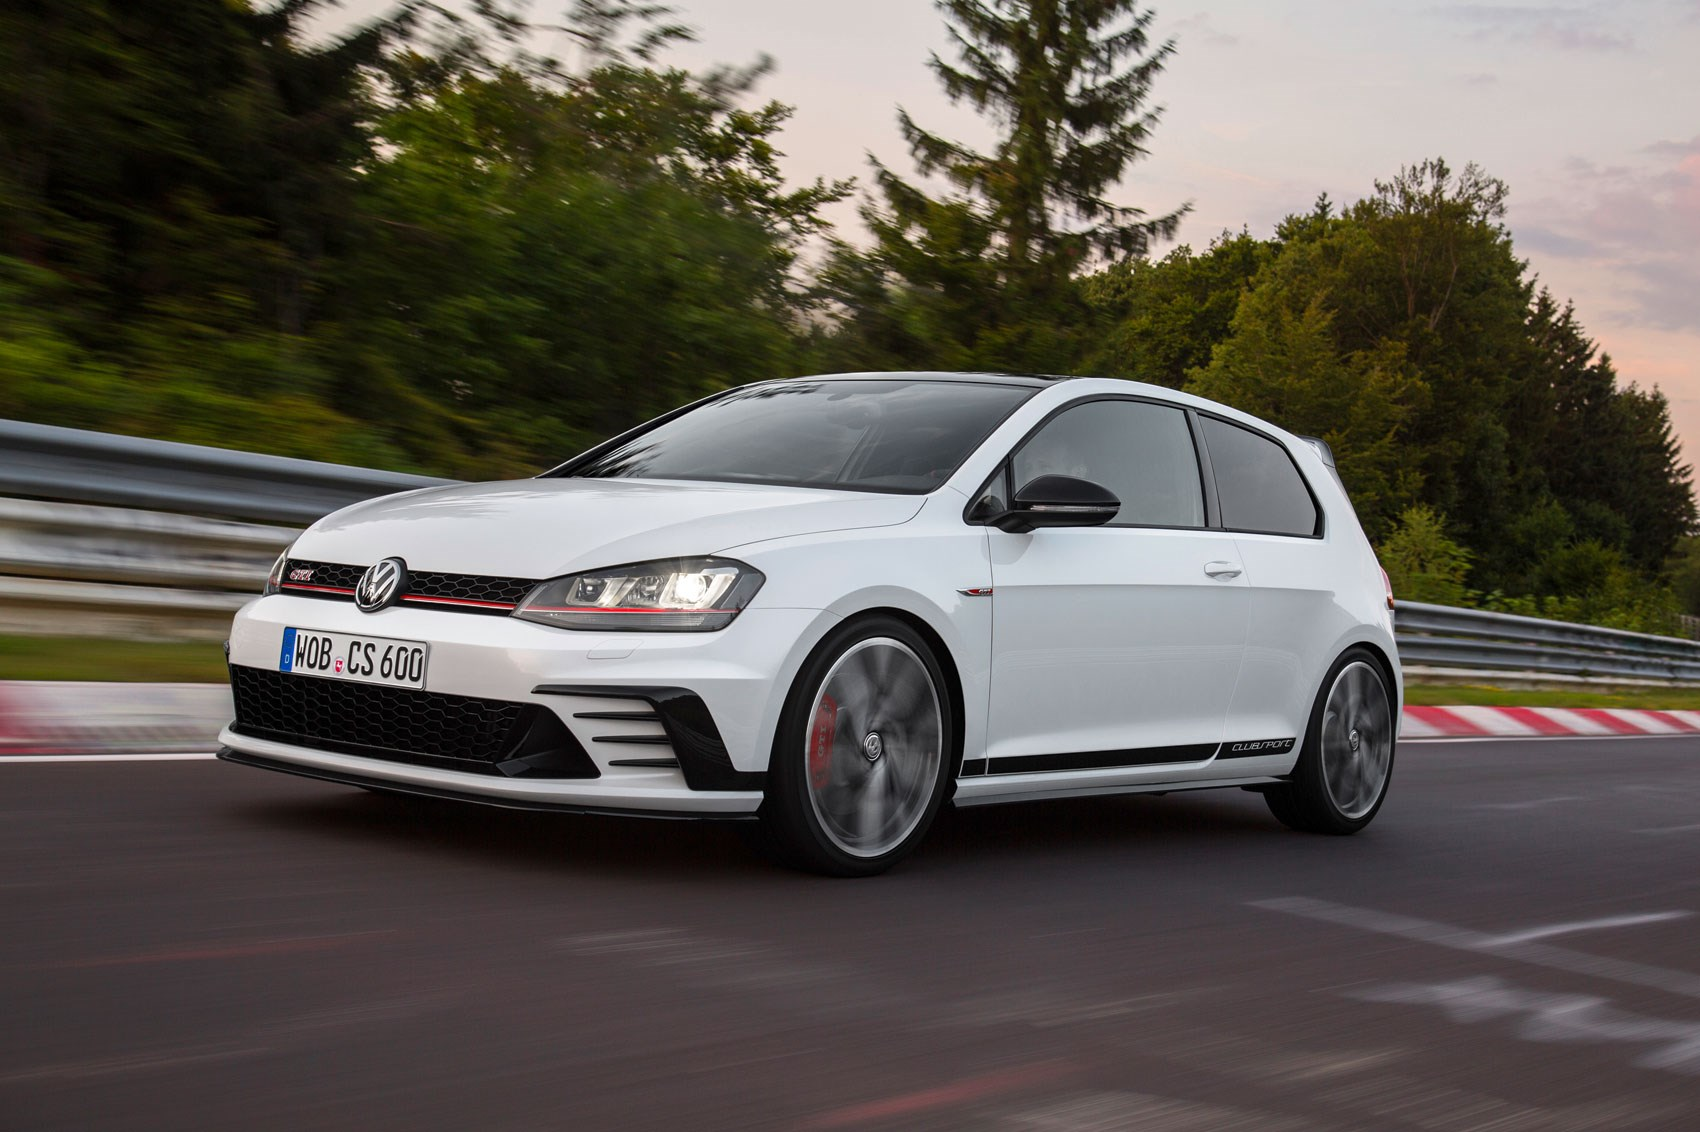 vw golf gti clubsport 2016 the most powerful gti yet by. Black Bedroom Furniture Sets. Home Design Ideas